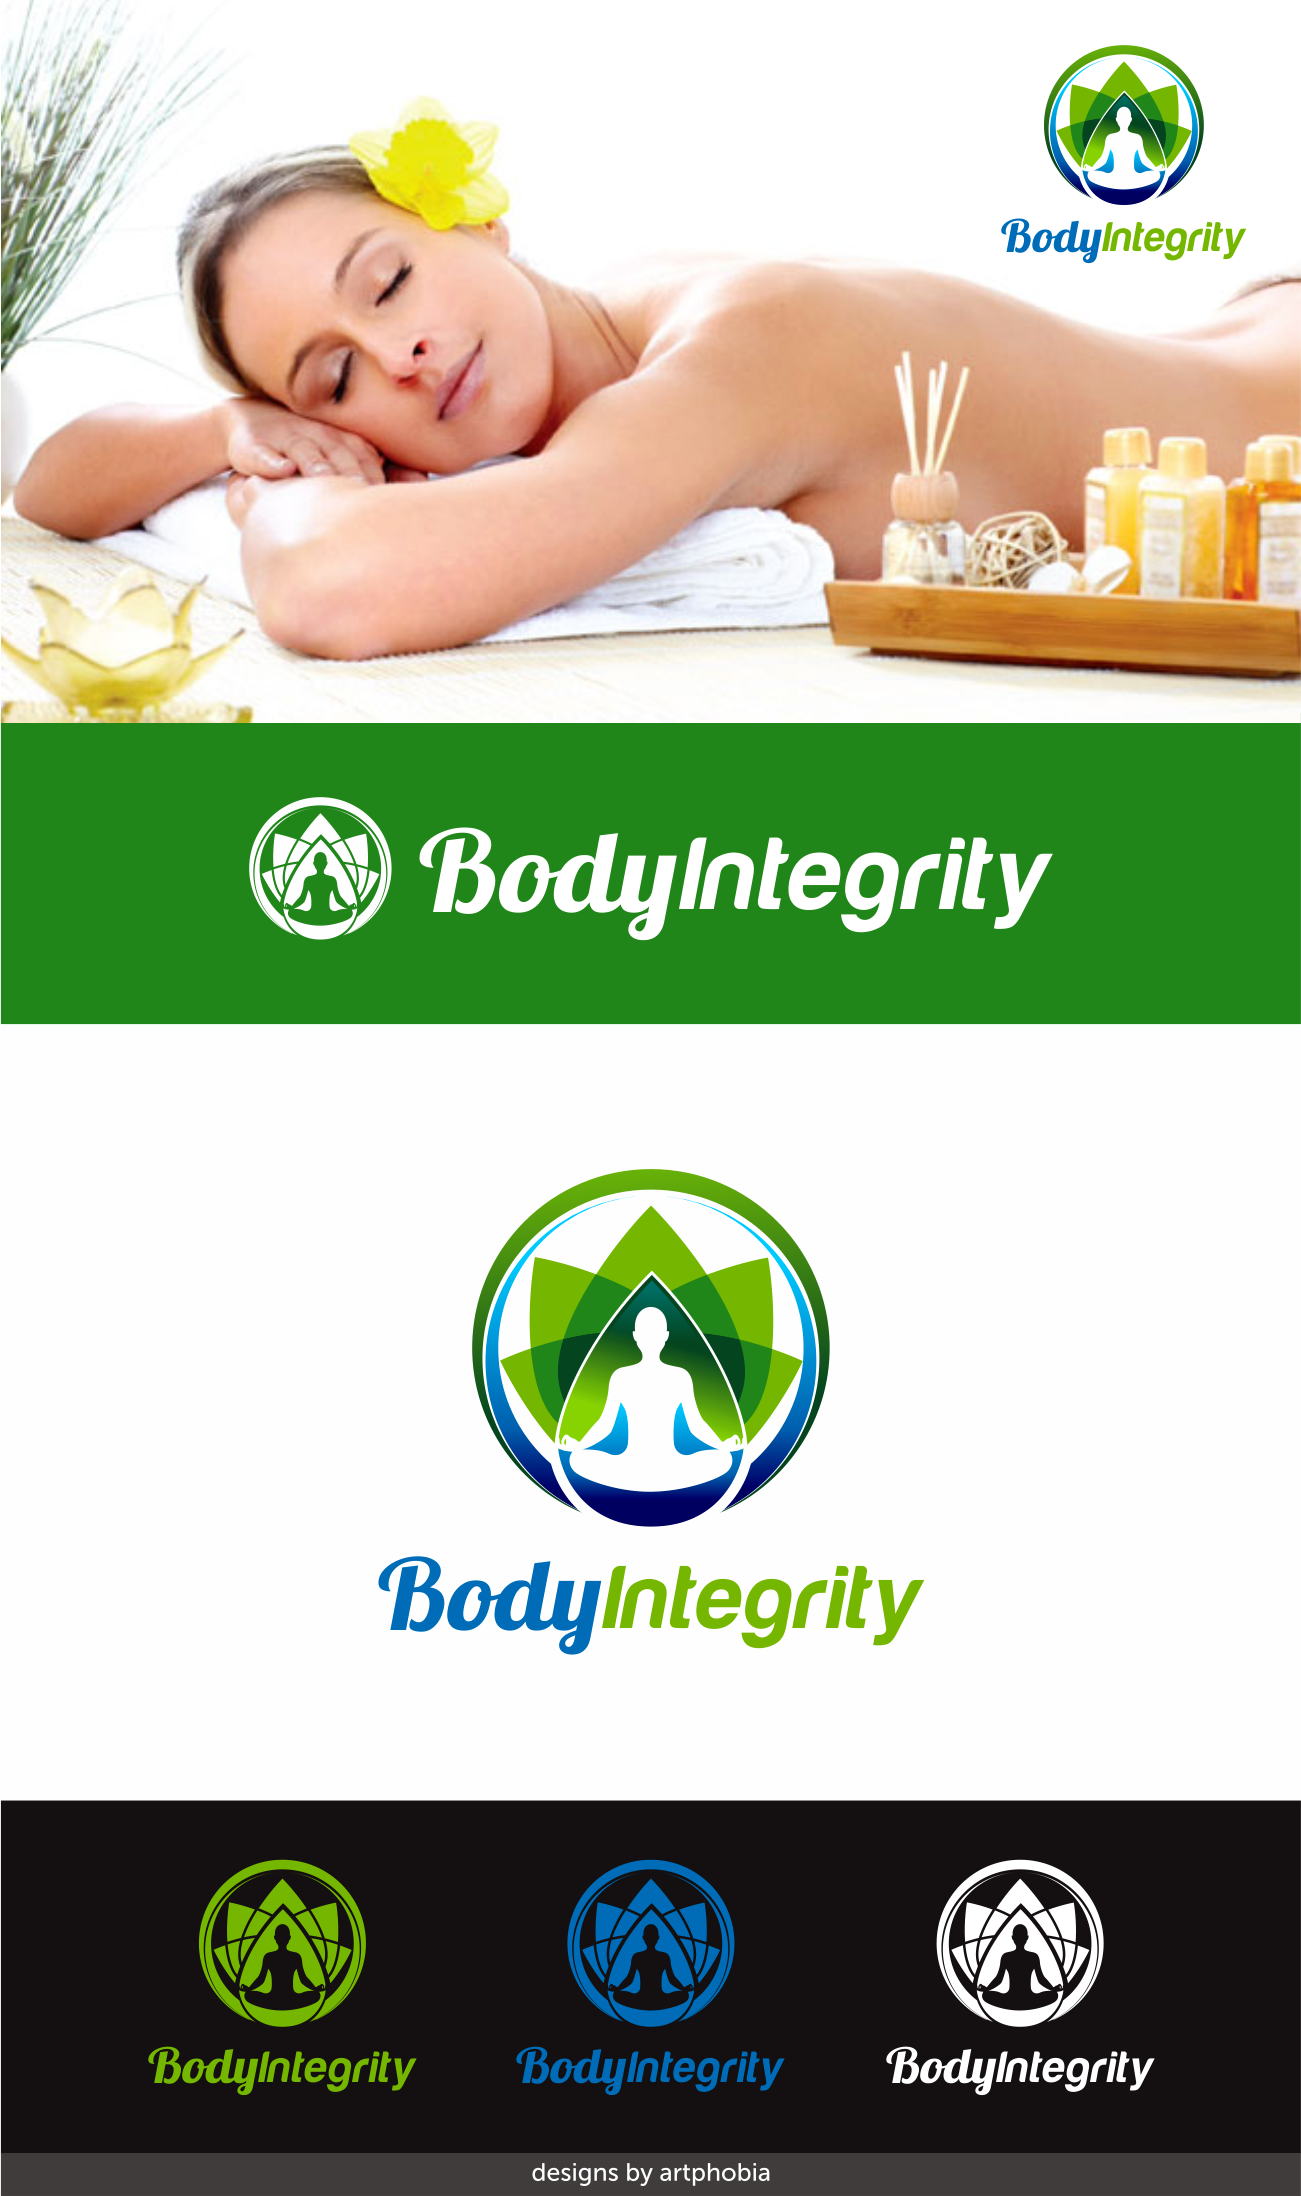 Create a logo for Body Integrity therapeutic massage (website potentially needed)